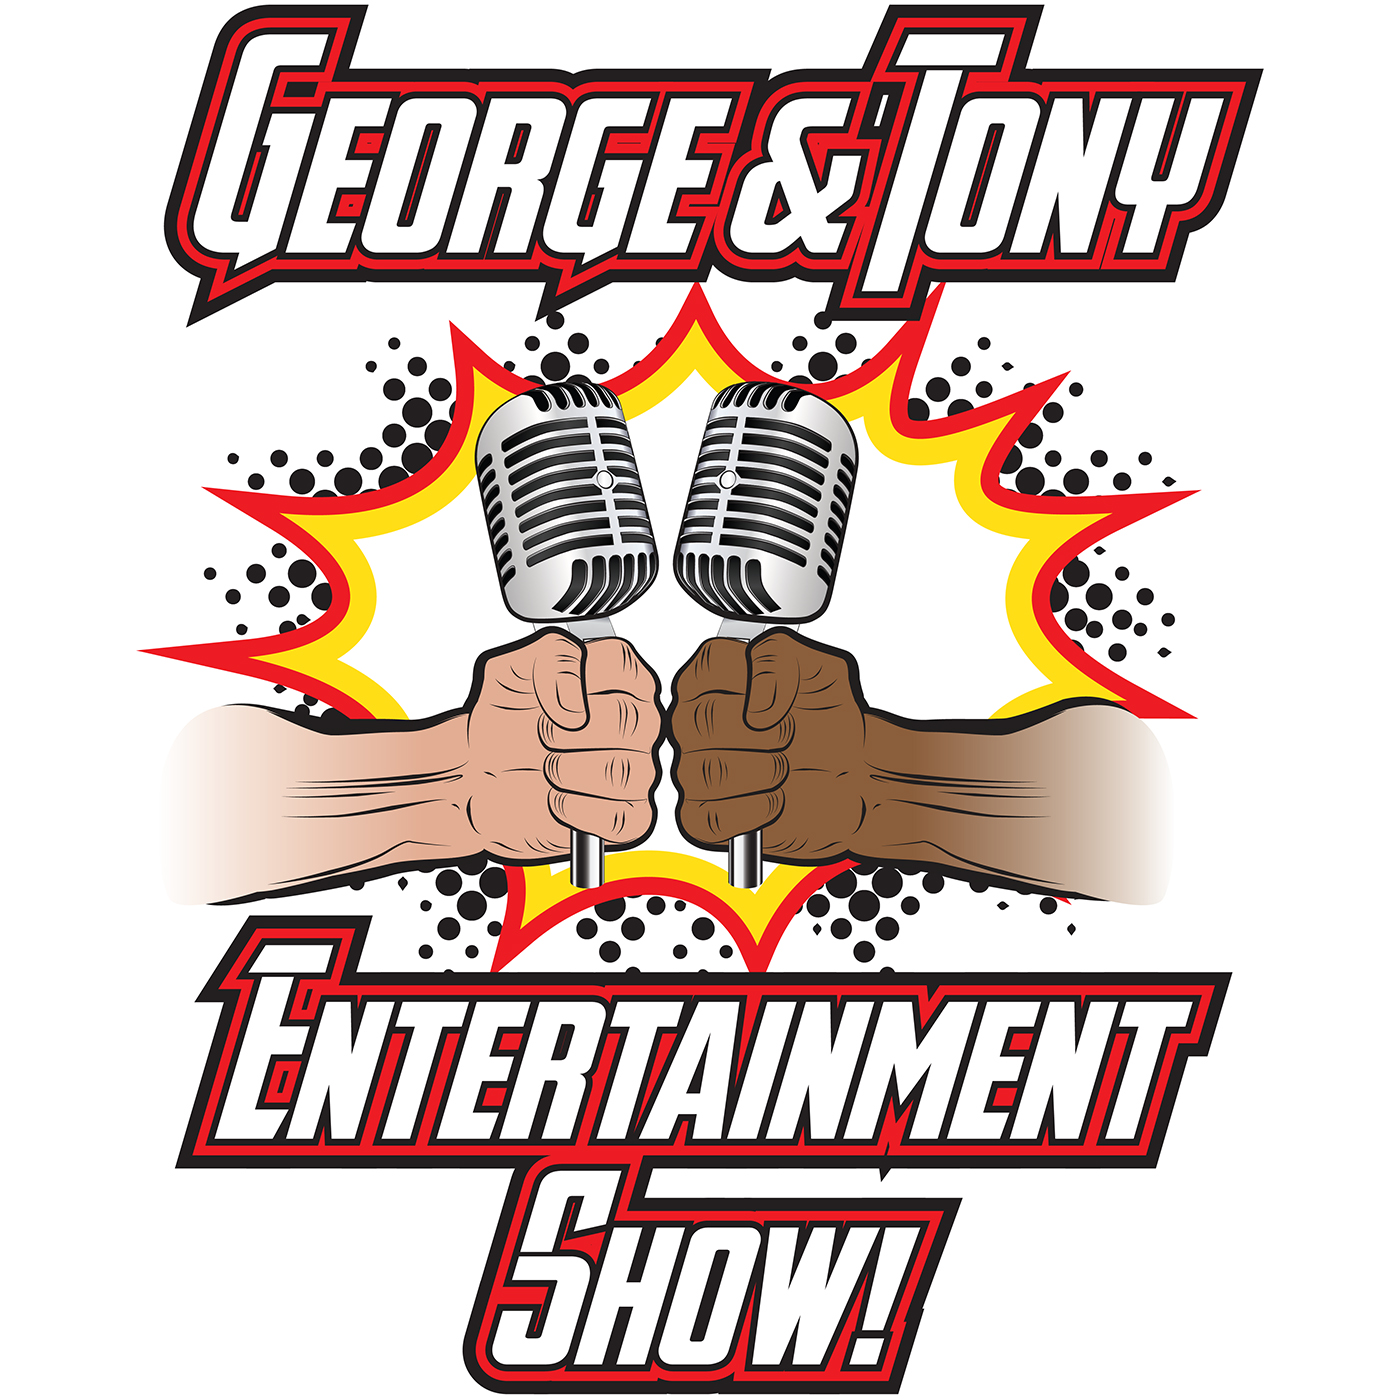 George and Tony Entertainment Show #39